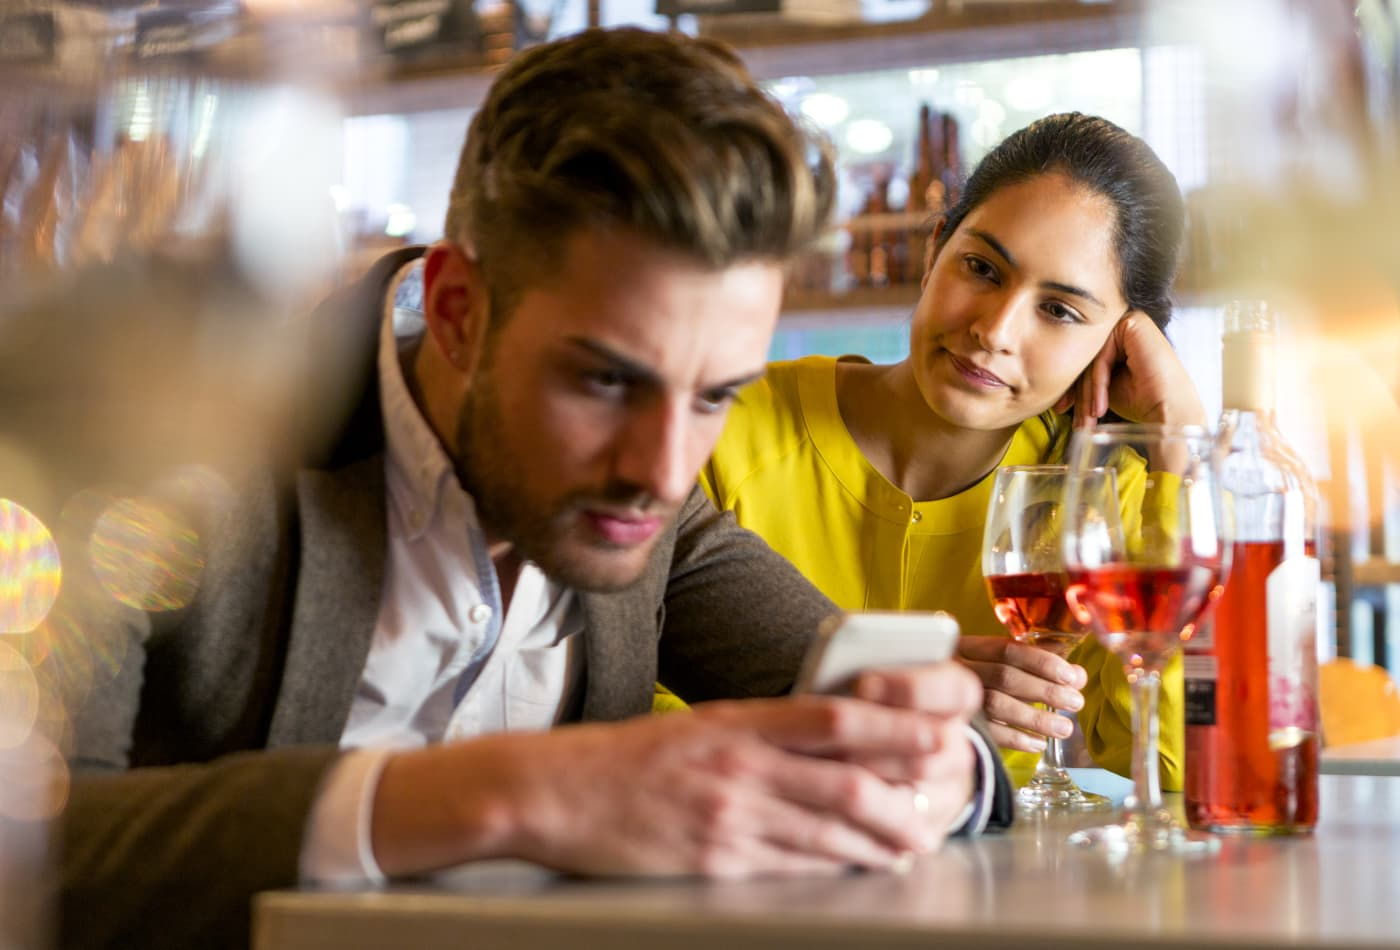 Your partner is more likely to know your phone PIN or favorite band than what you do for work